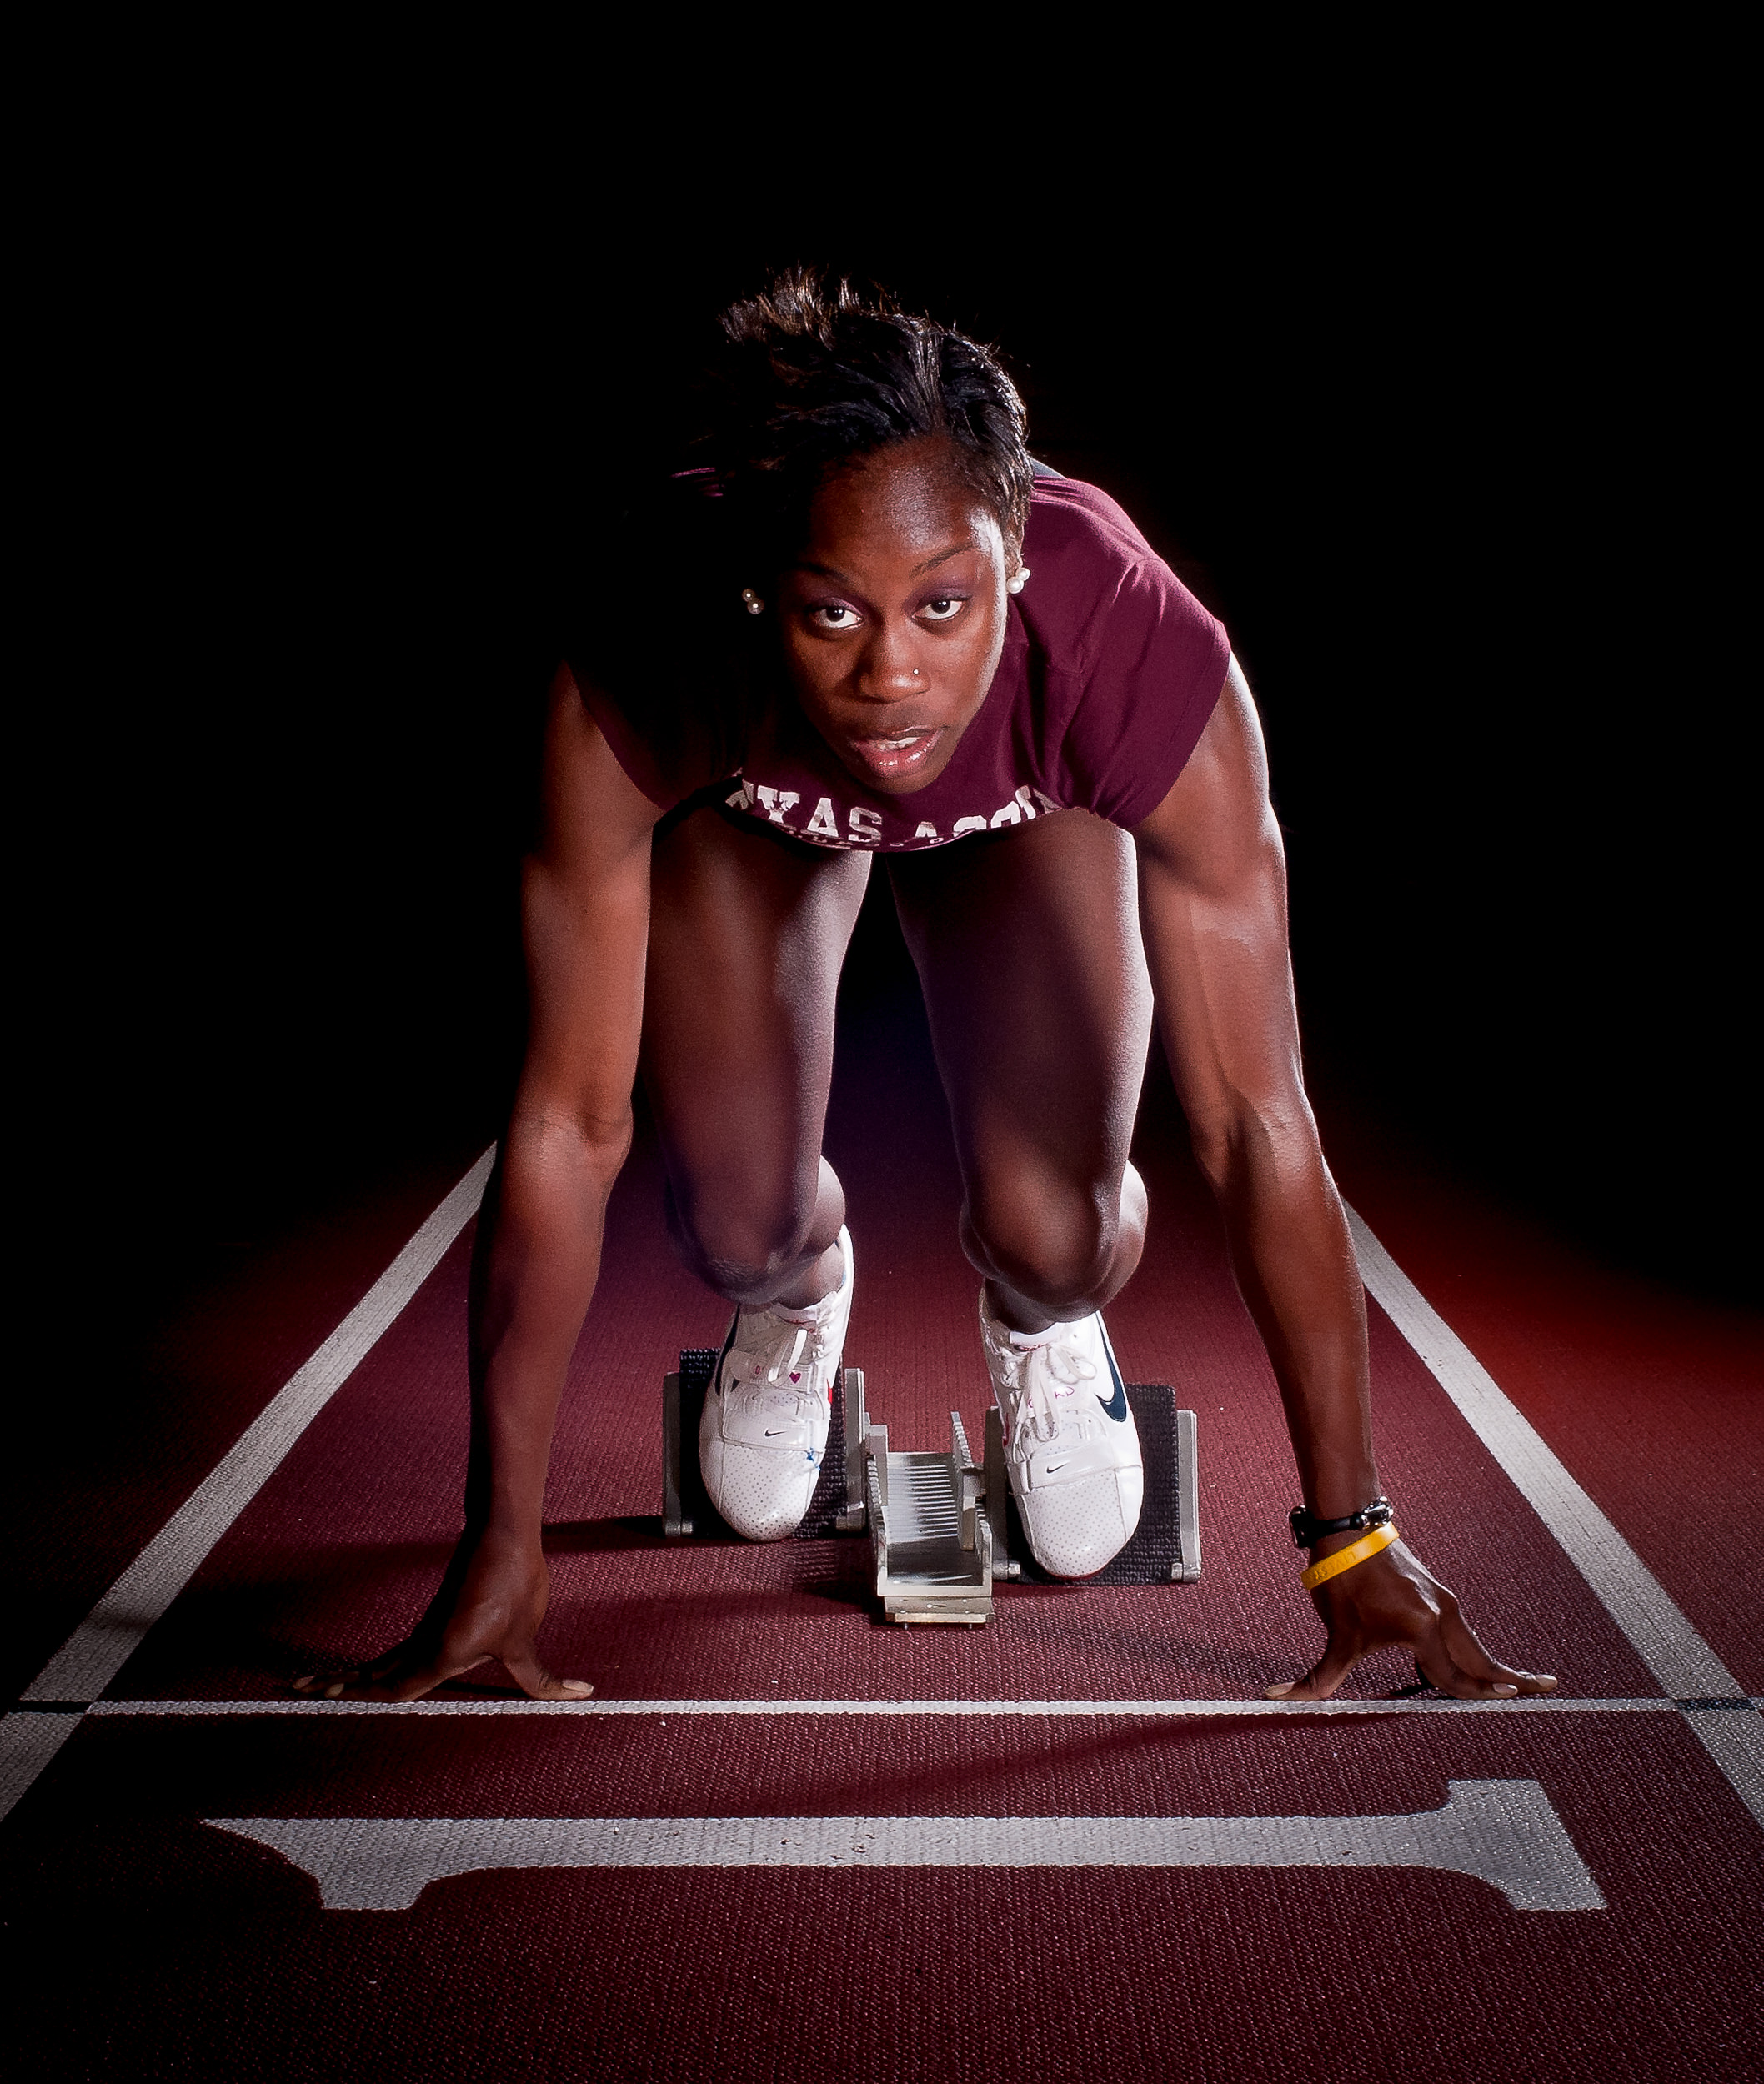 "Senior Jessica Beard, medalist sprinter in the 4x400m at the 2009 Olympics, takes her mark on the starting block, Feb. 1, 2011. As a graduating senior on the Texas A&M University Track & Field team, Beard was named as the Distinguished Letterman of the Year for exhibiting ""honor in all areas""."